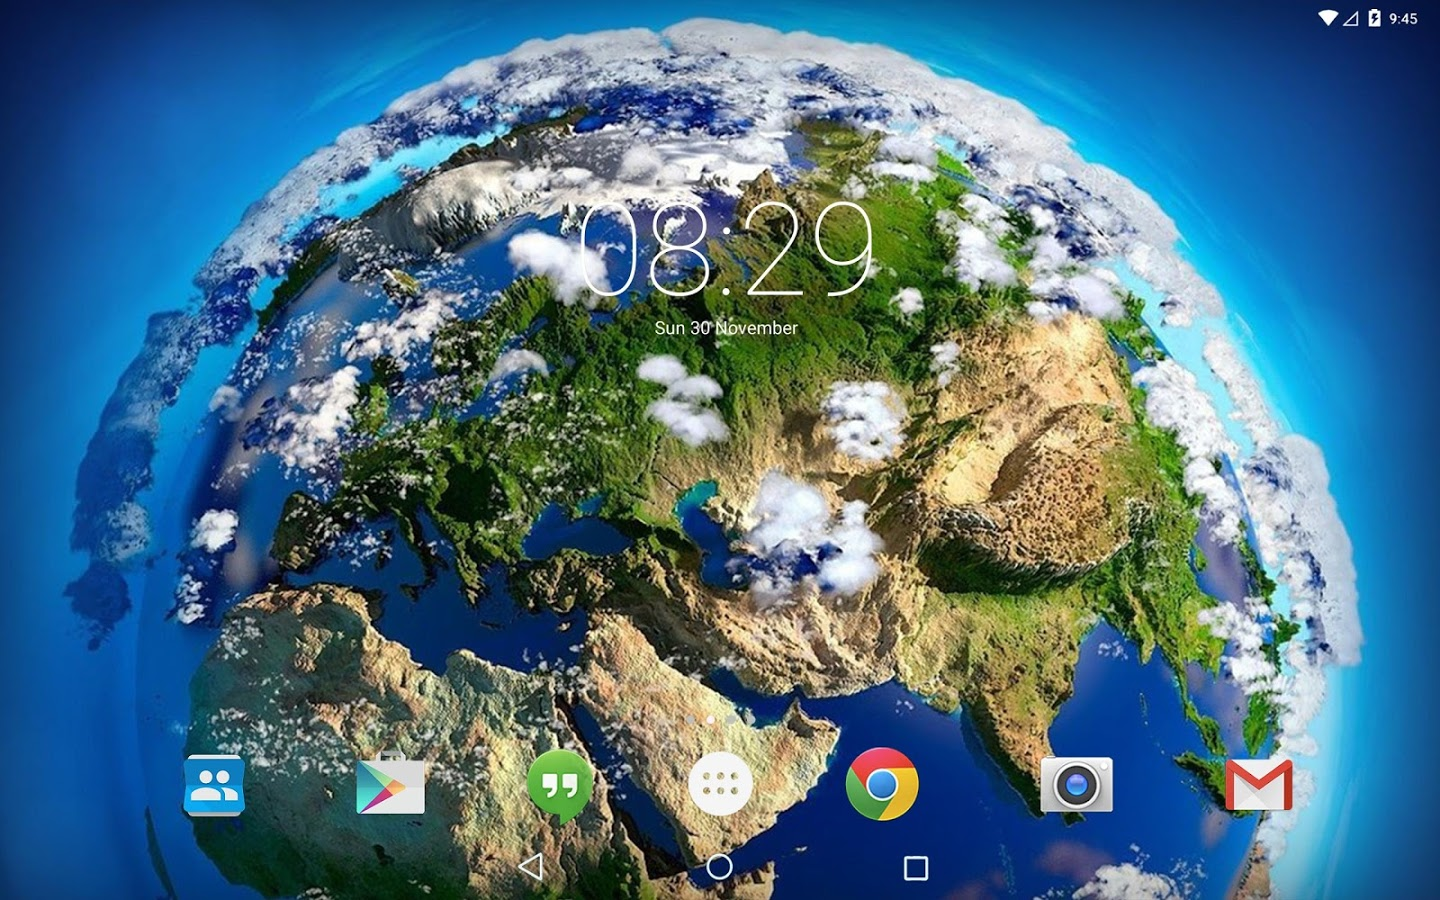 3d Live Wallpaper Apk Free Download Space Clouds 3d Live Wallpaper 187 Apk Thing Android Apps